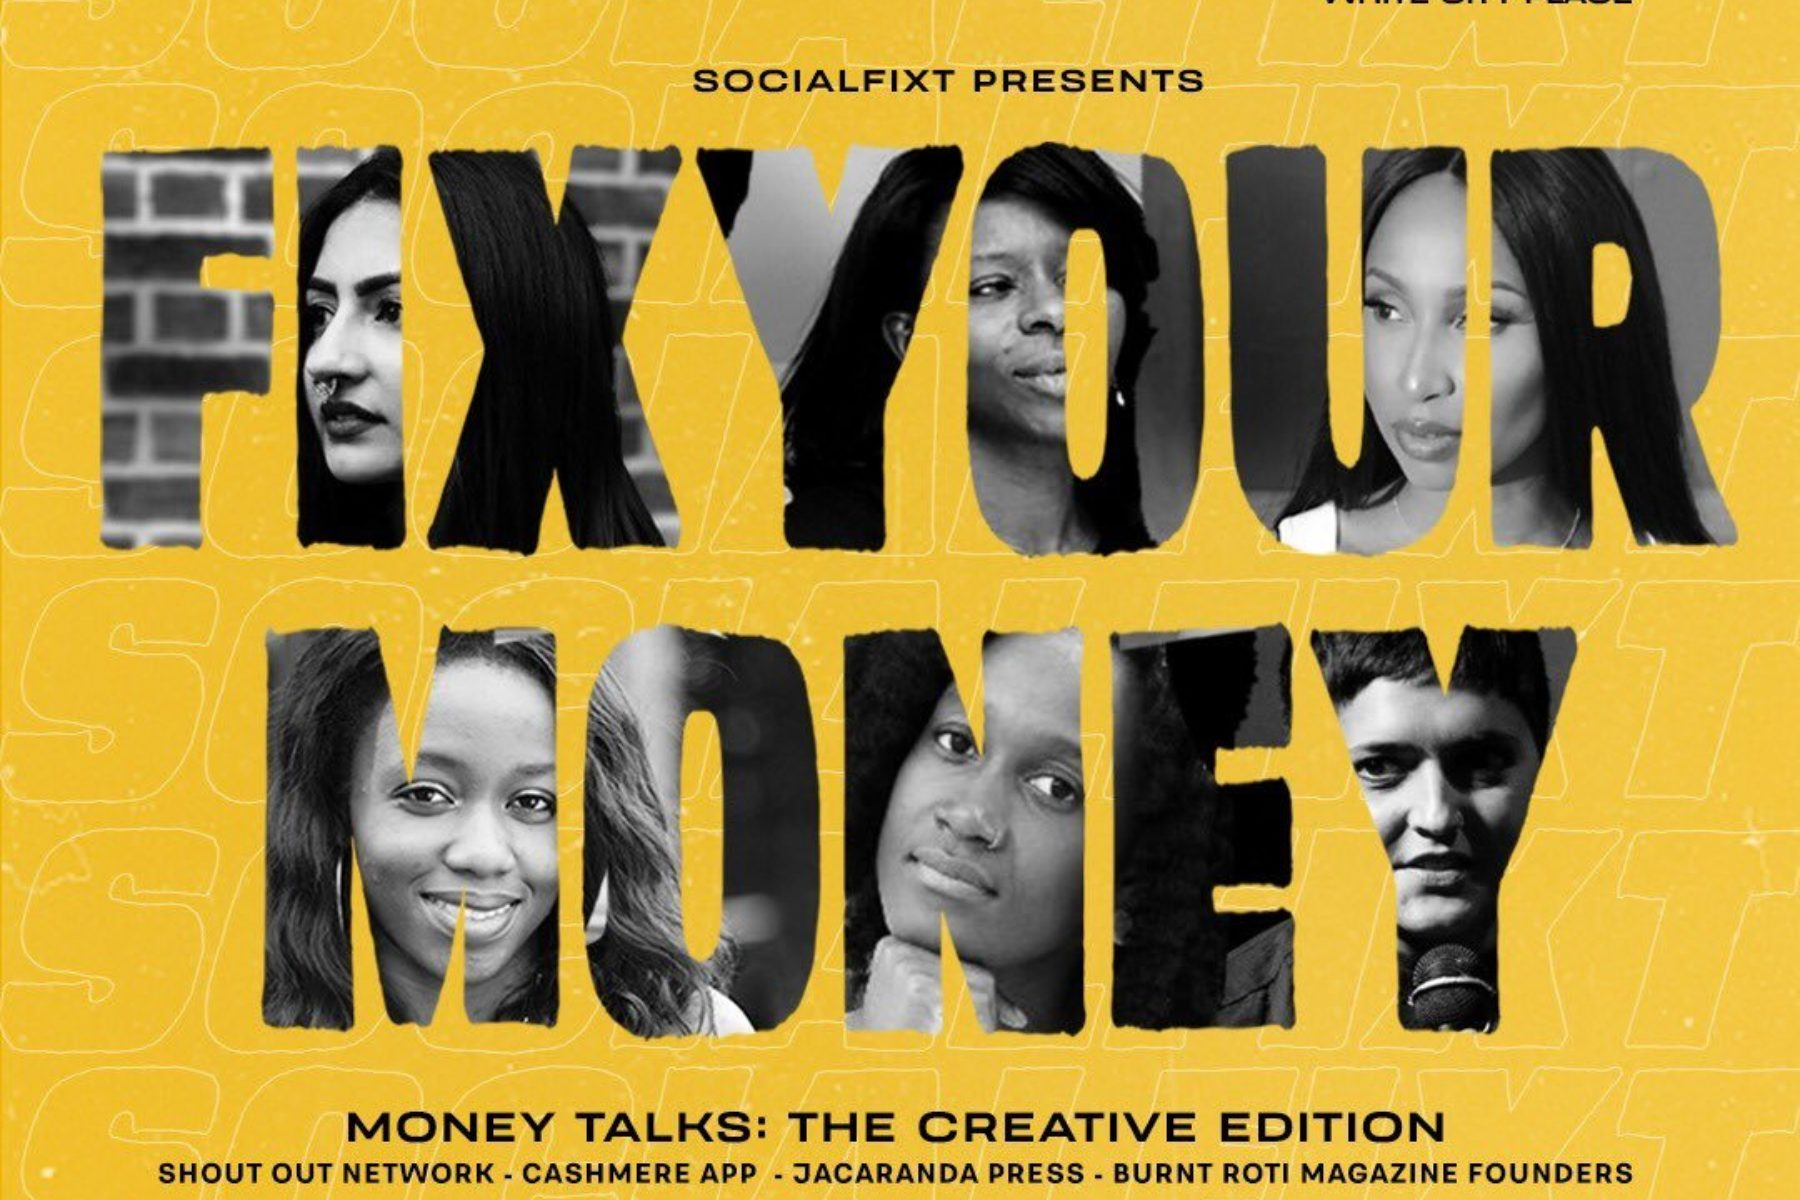 SocialFixt presents FIX YOUR MONEY